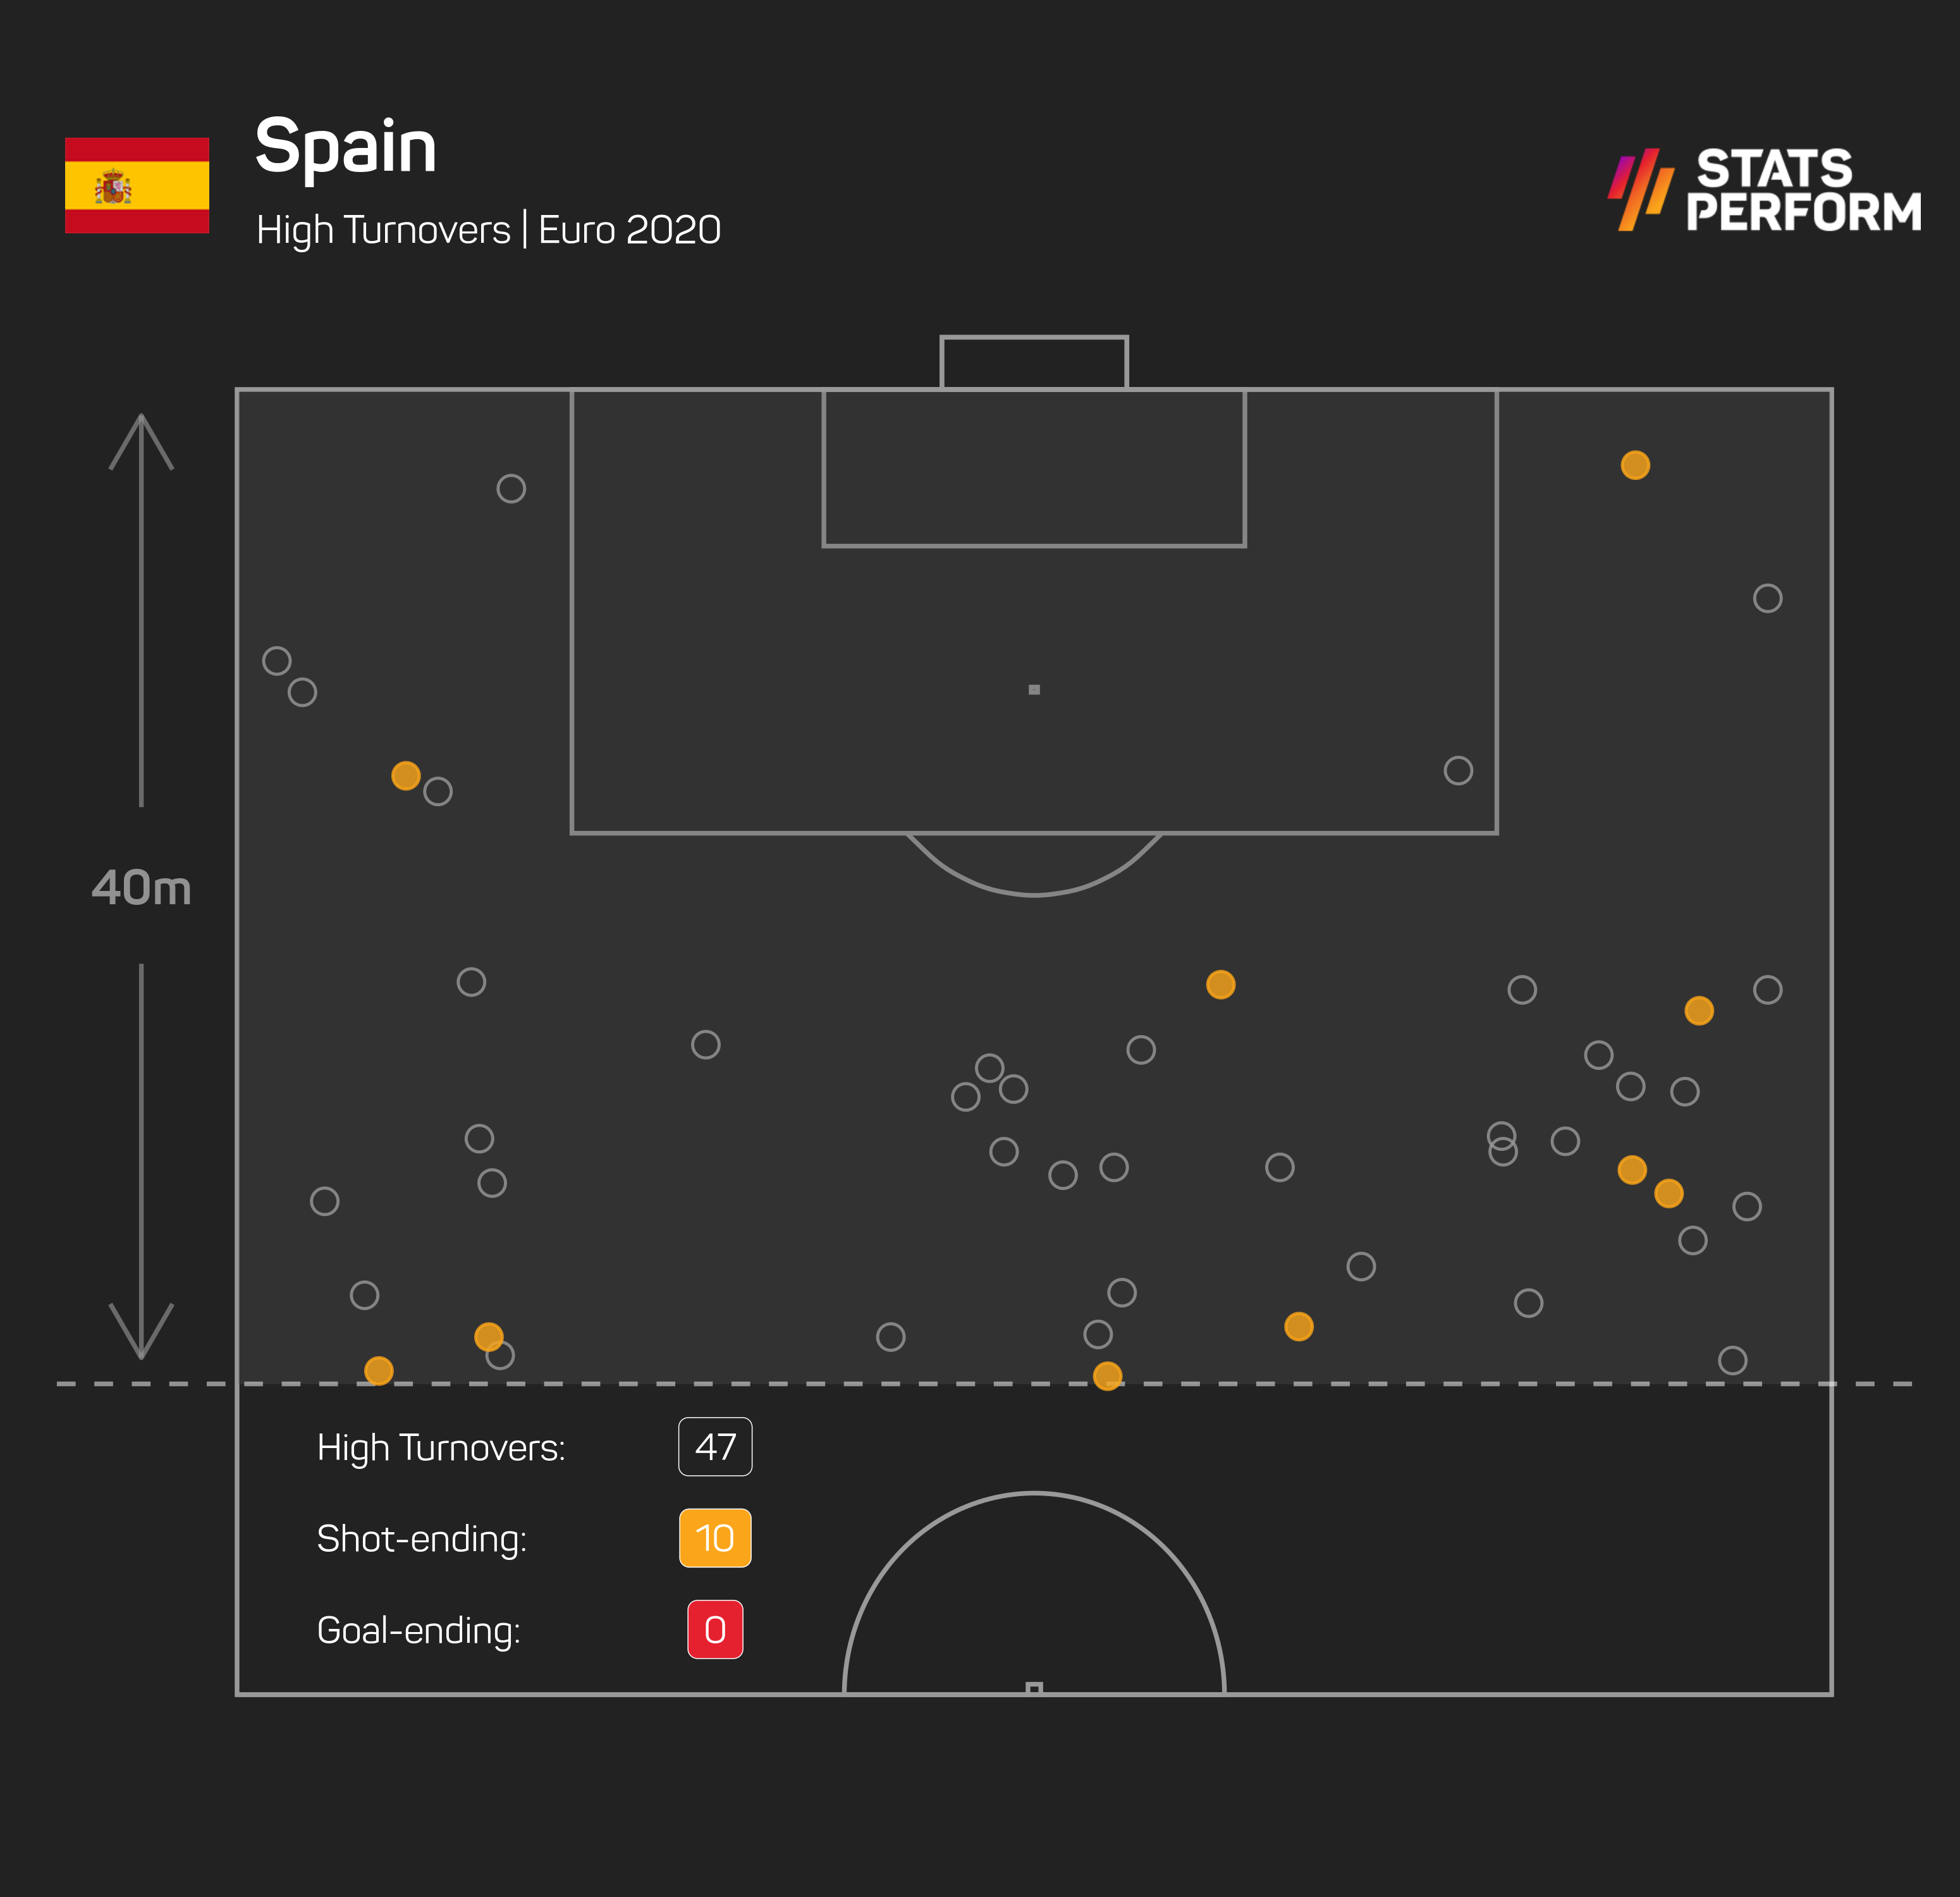 Spain's 47 high turnovers may only be bettered by the Netherlands, they're yet to capitalise on any of them by getting a goal